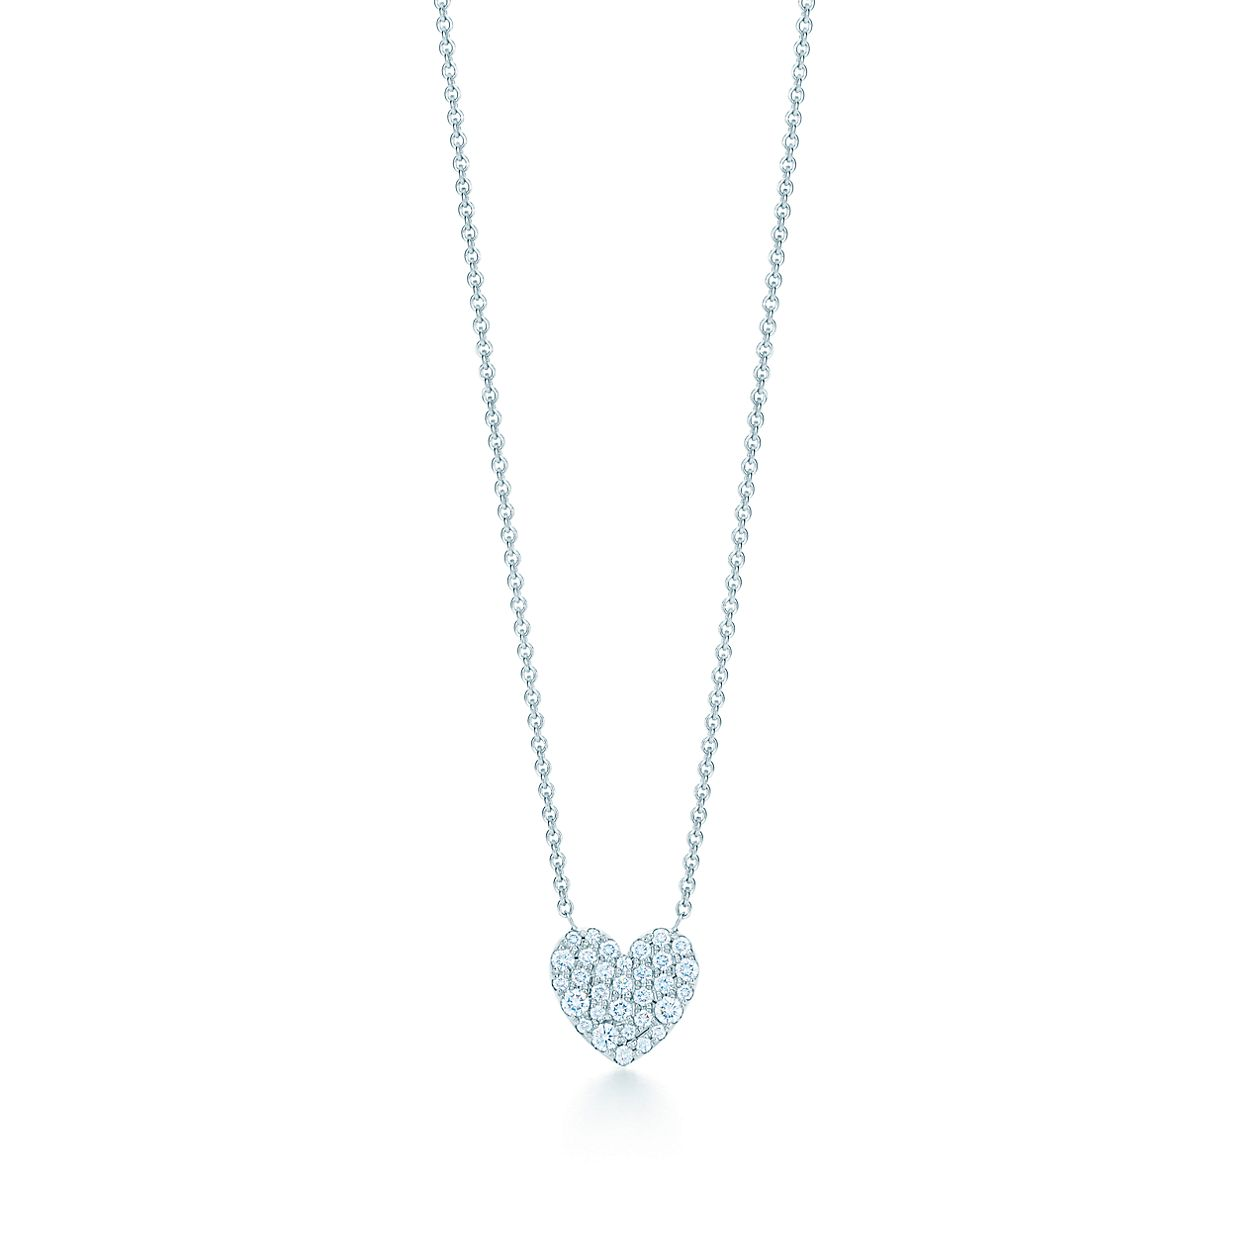 com double j necklace s product original heart jewellery notonthehighstreet jandsjewellery by